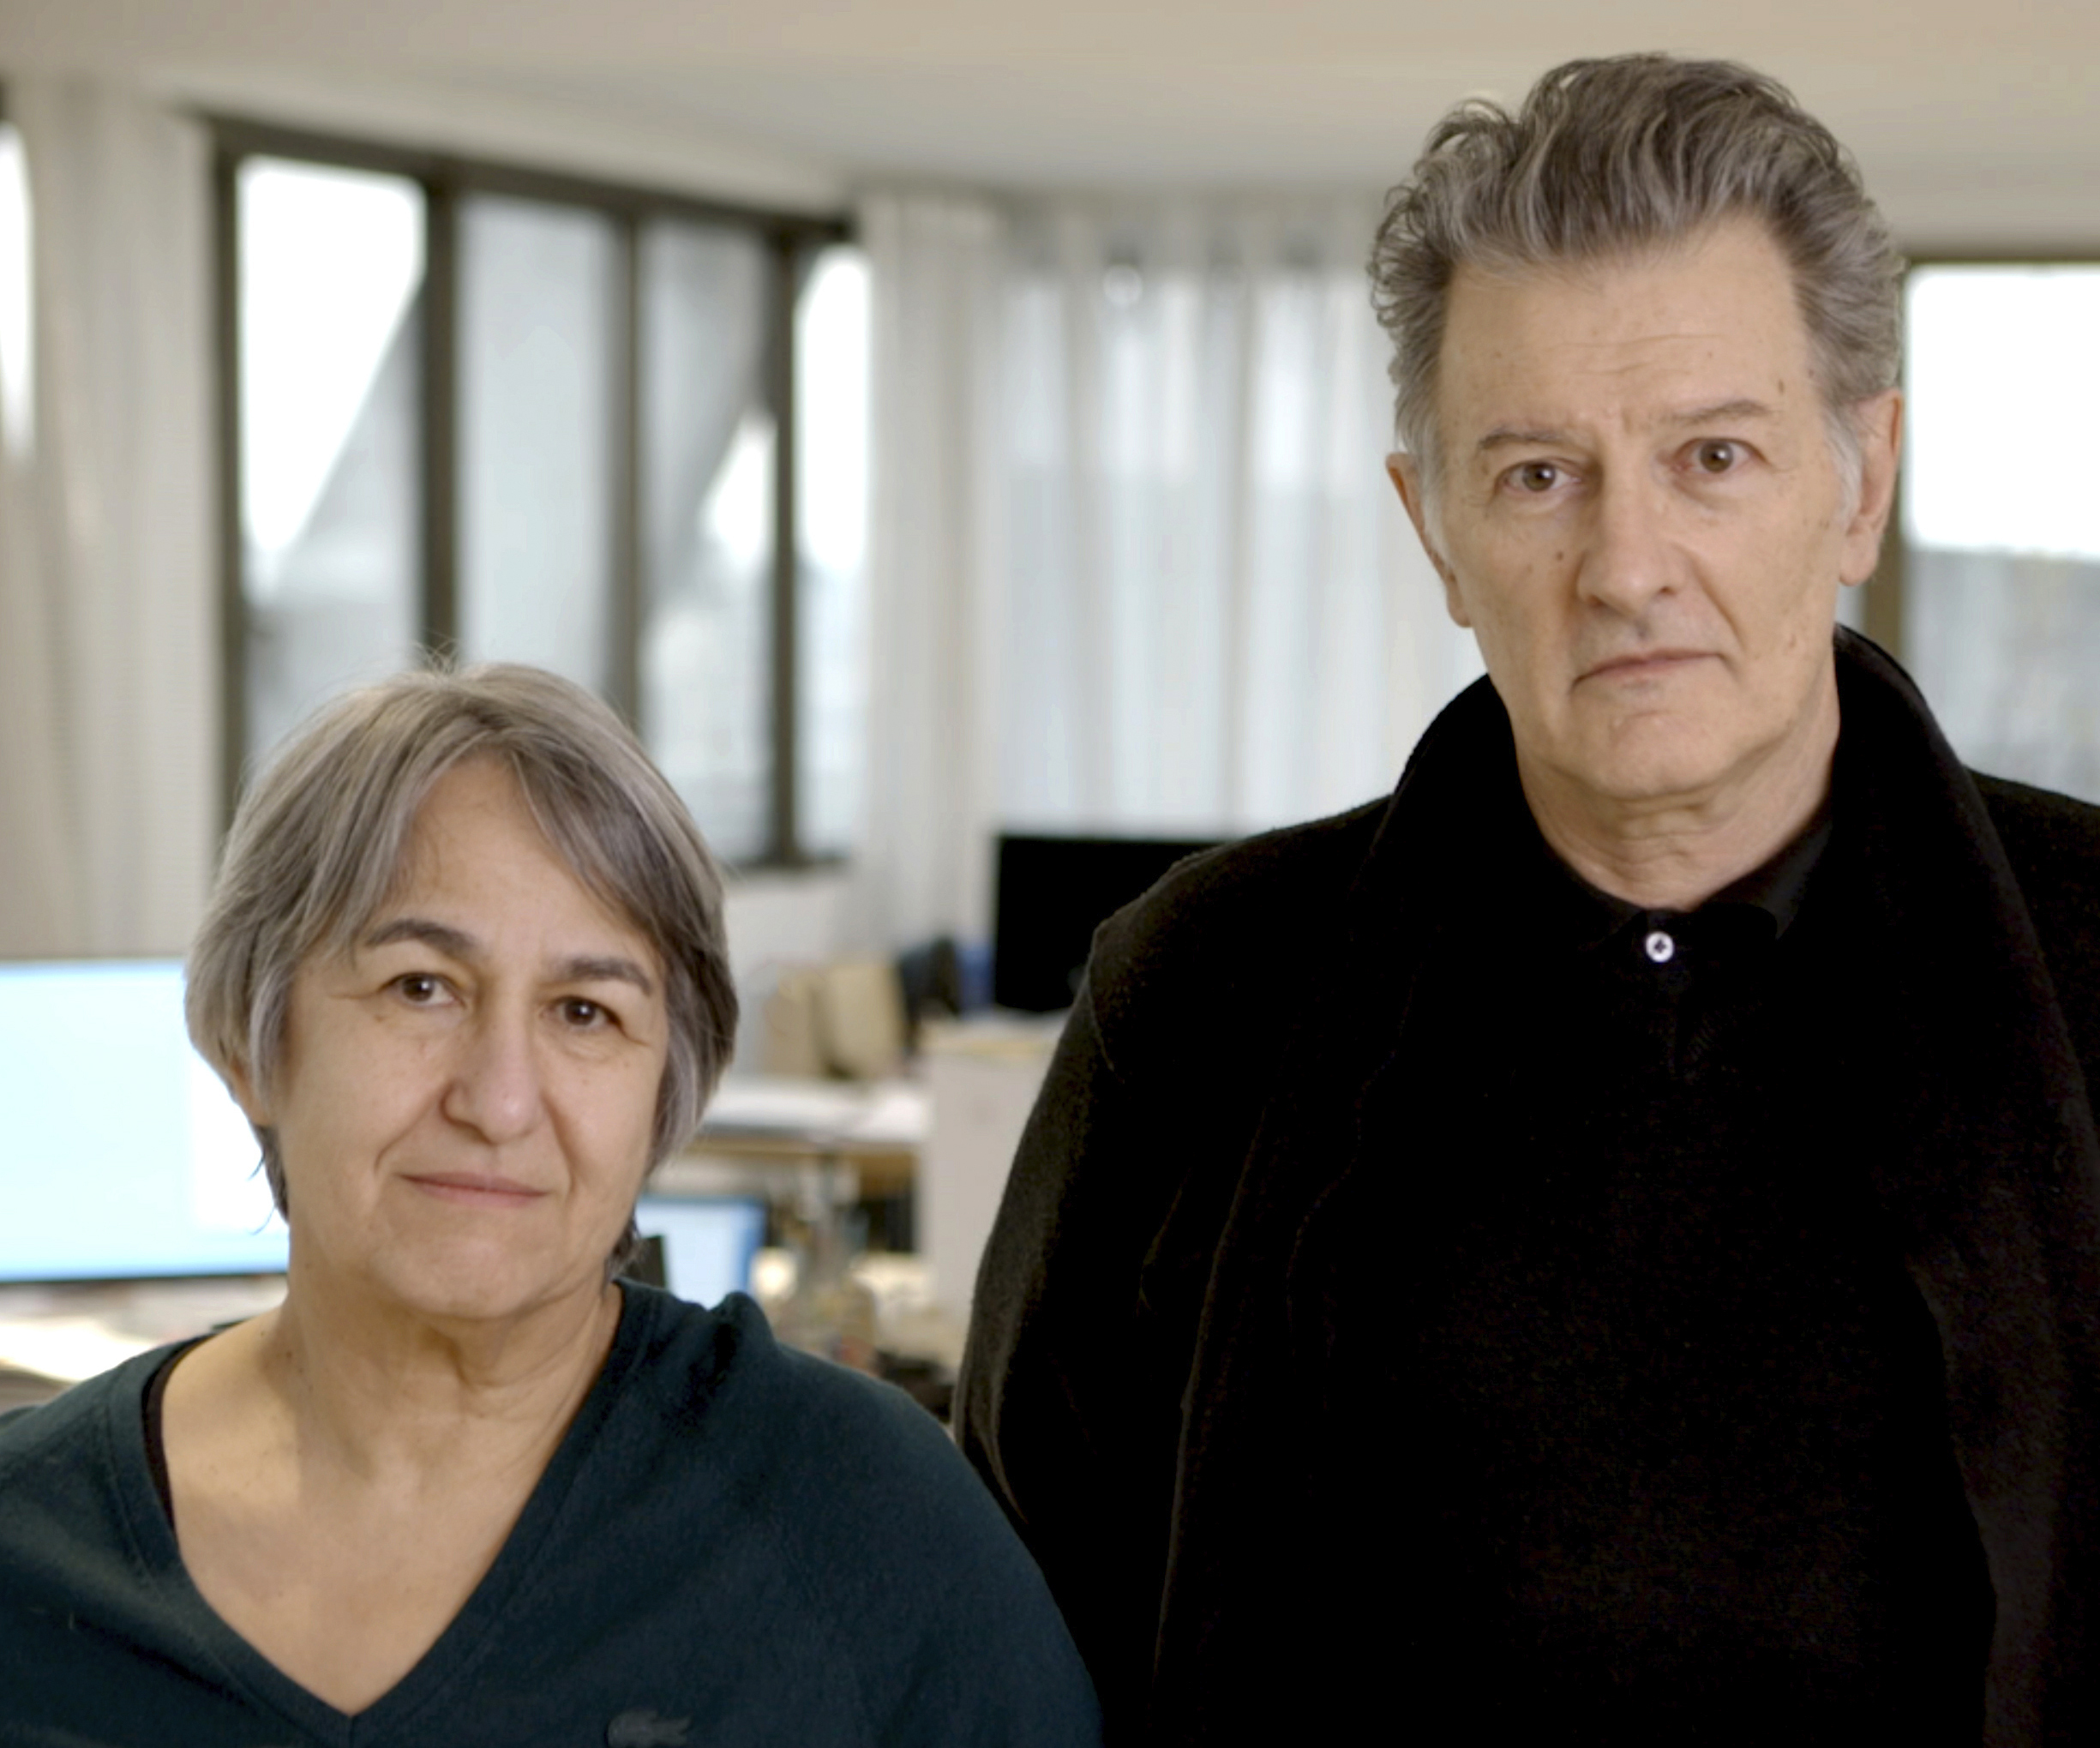 French architects Anne Lacaton and Jean-Philippe Vassal are the recipients of this year's Pritzker Architecture Prize. The pair founded Lacaton & Vassal in Paris in 1987 and have devoted their energies to both private and public housing, as well as museums and other cultural and academic institution